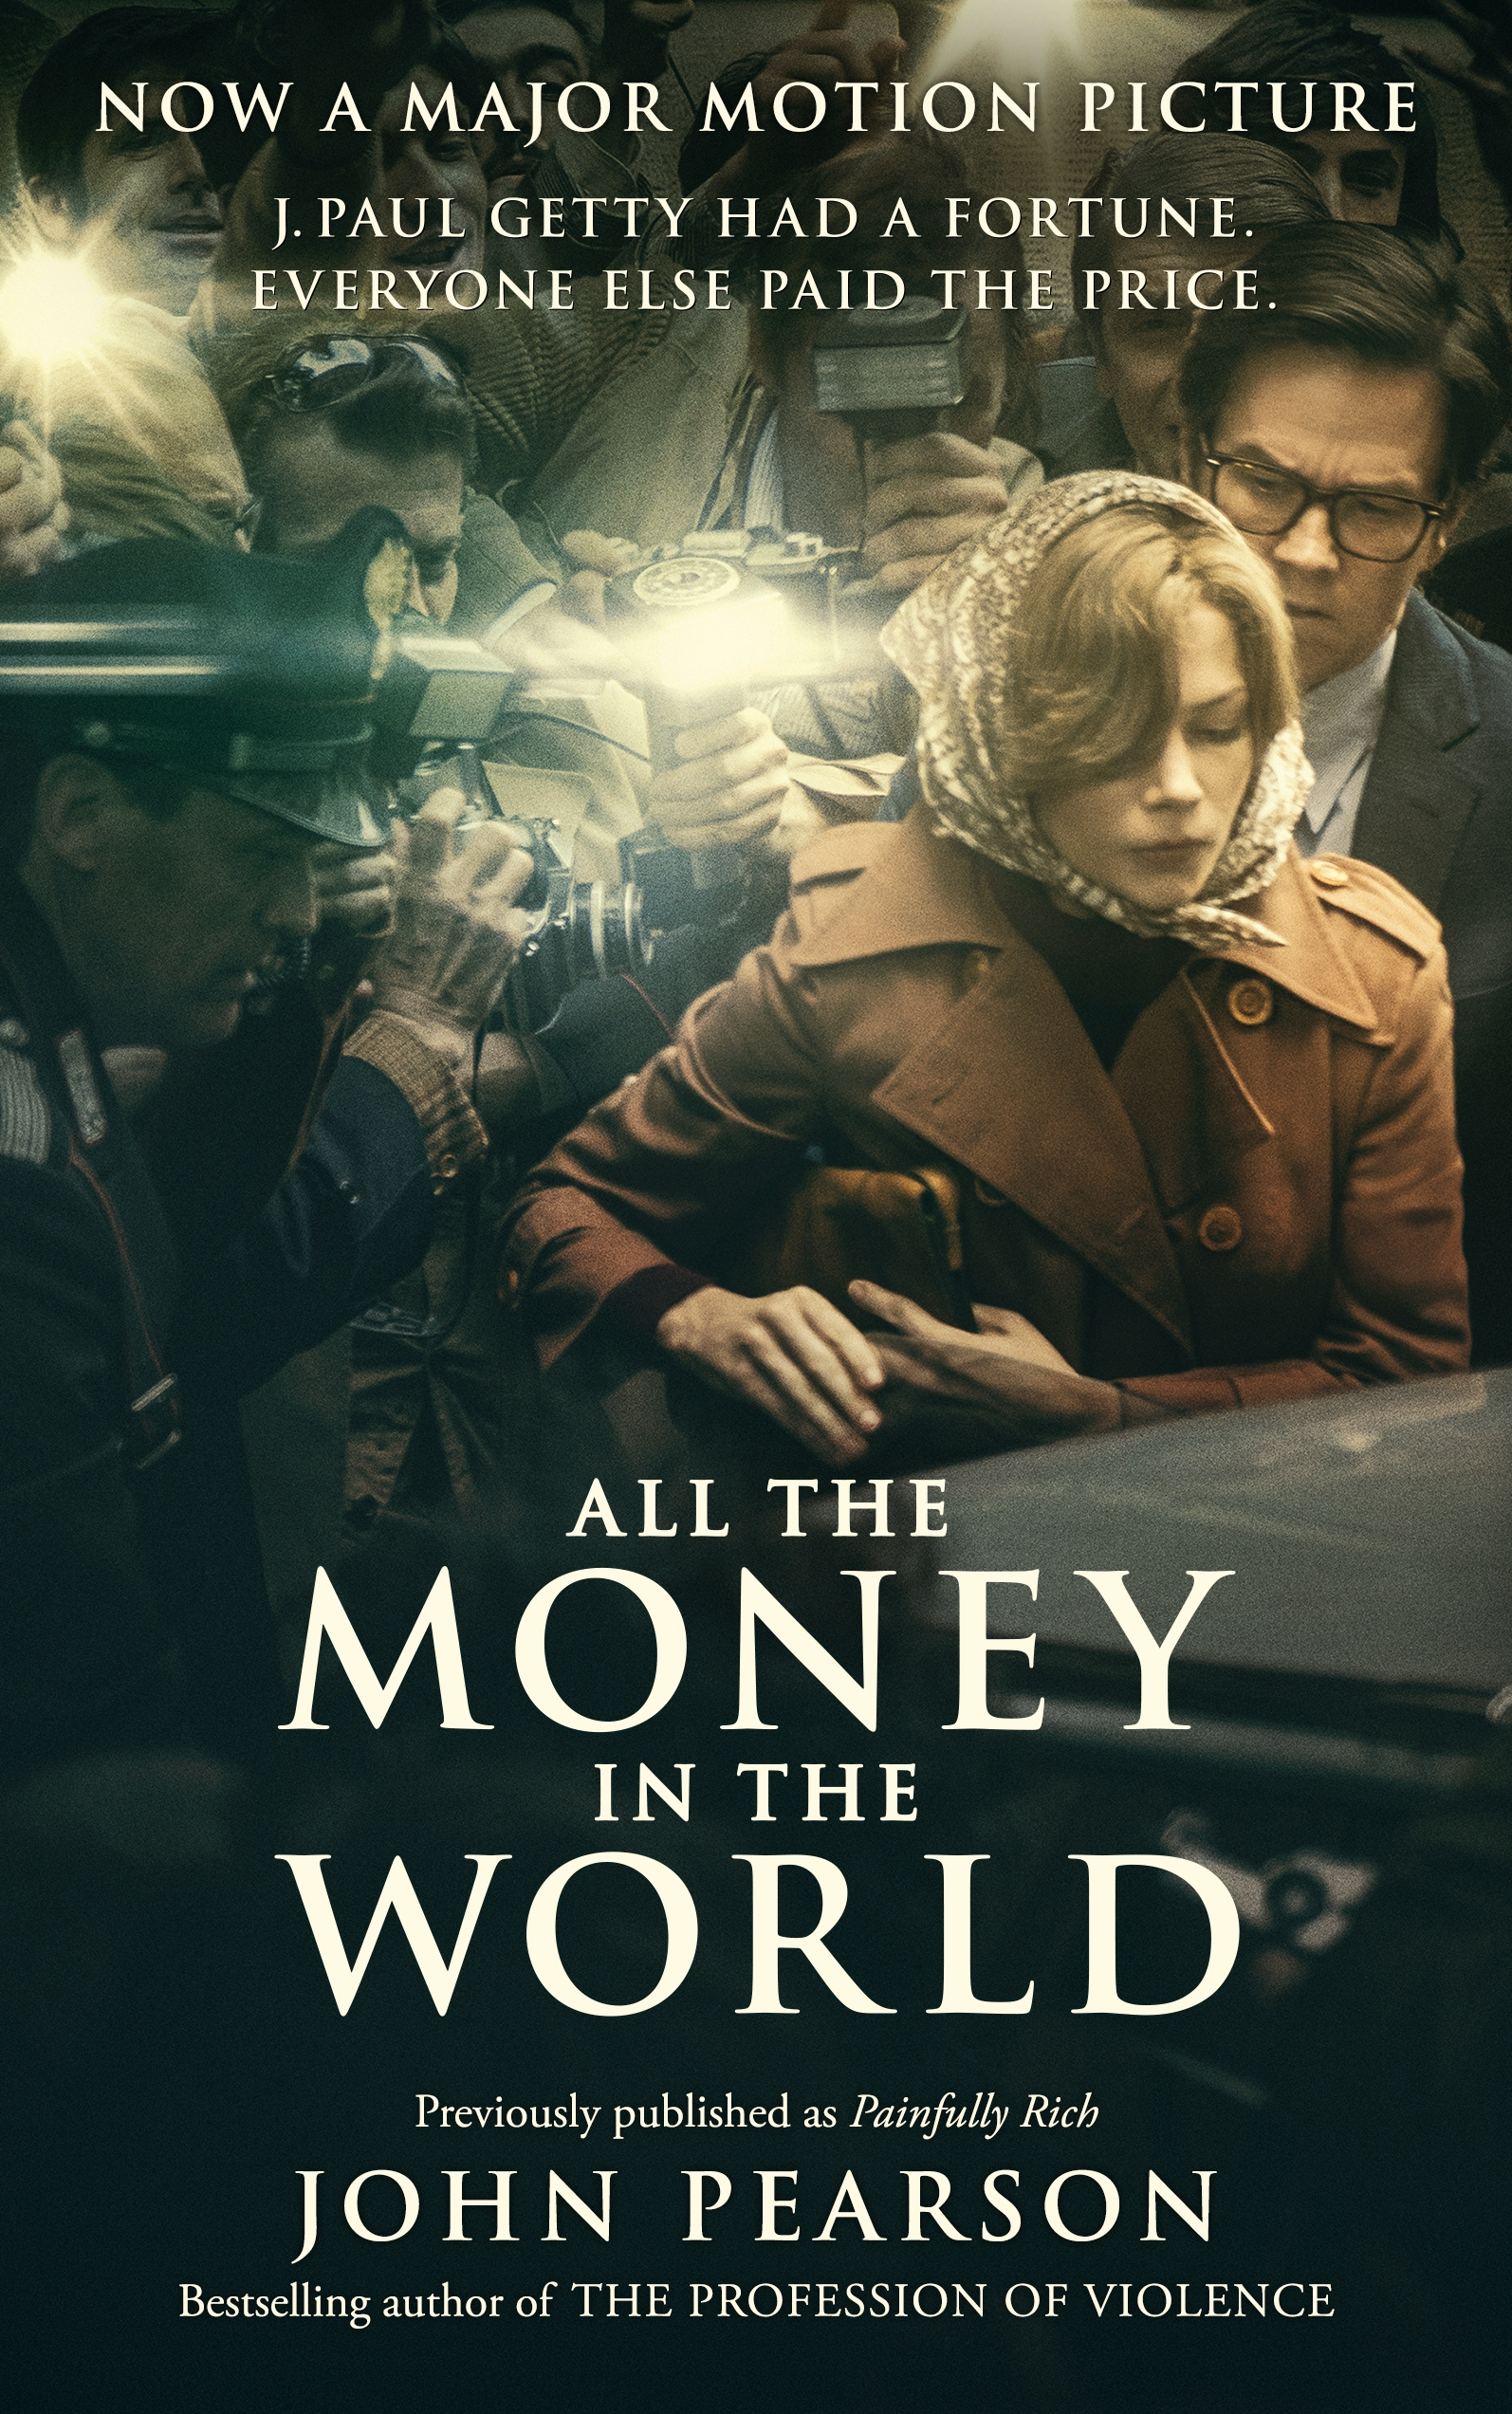 All the Money in the World previously published as Painfully Rich